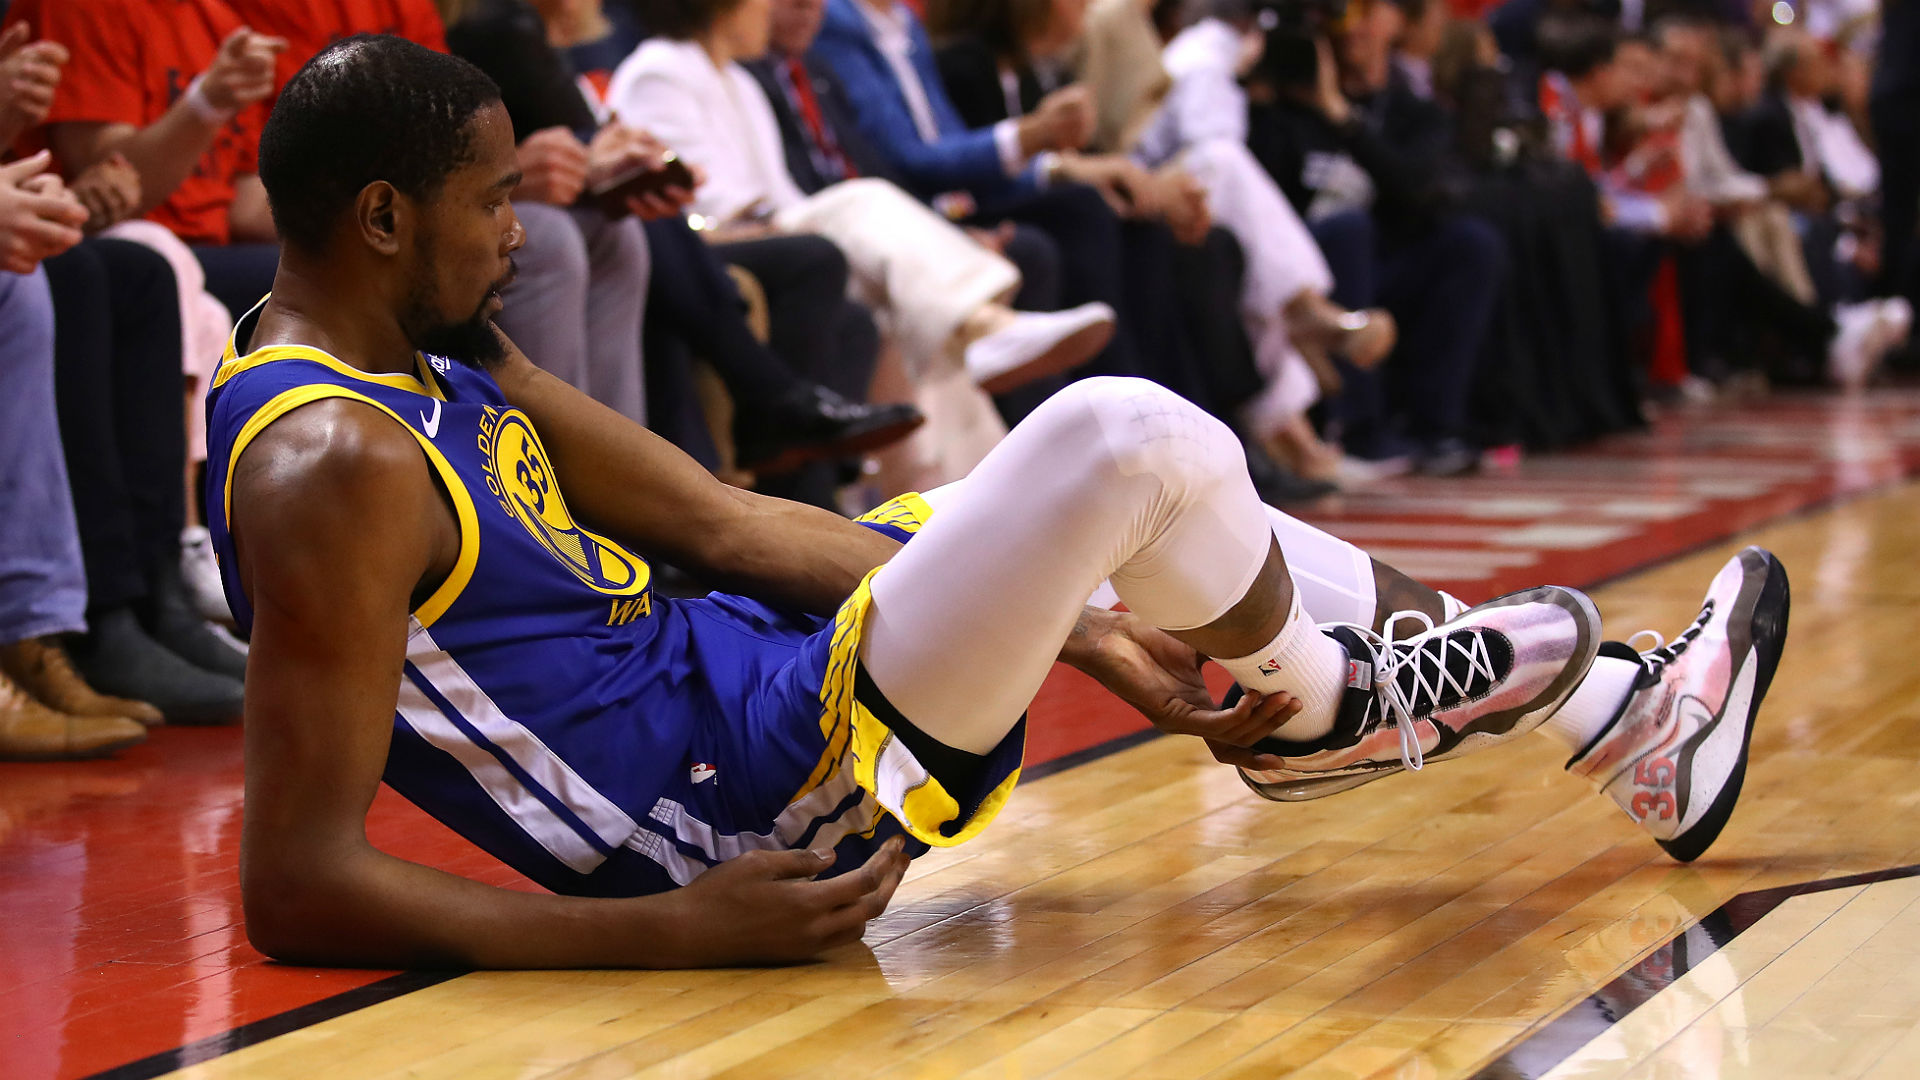 Kevin Durant injury update: Nets superstar shares recovery photos on Instagram